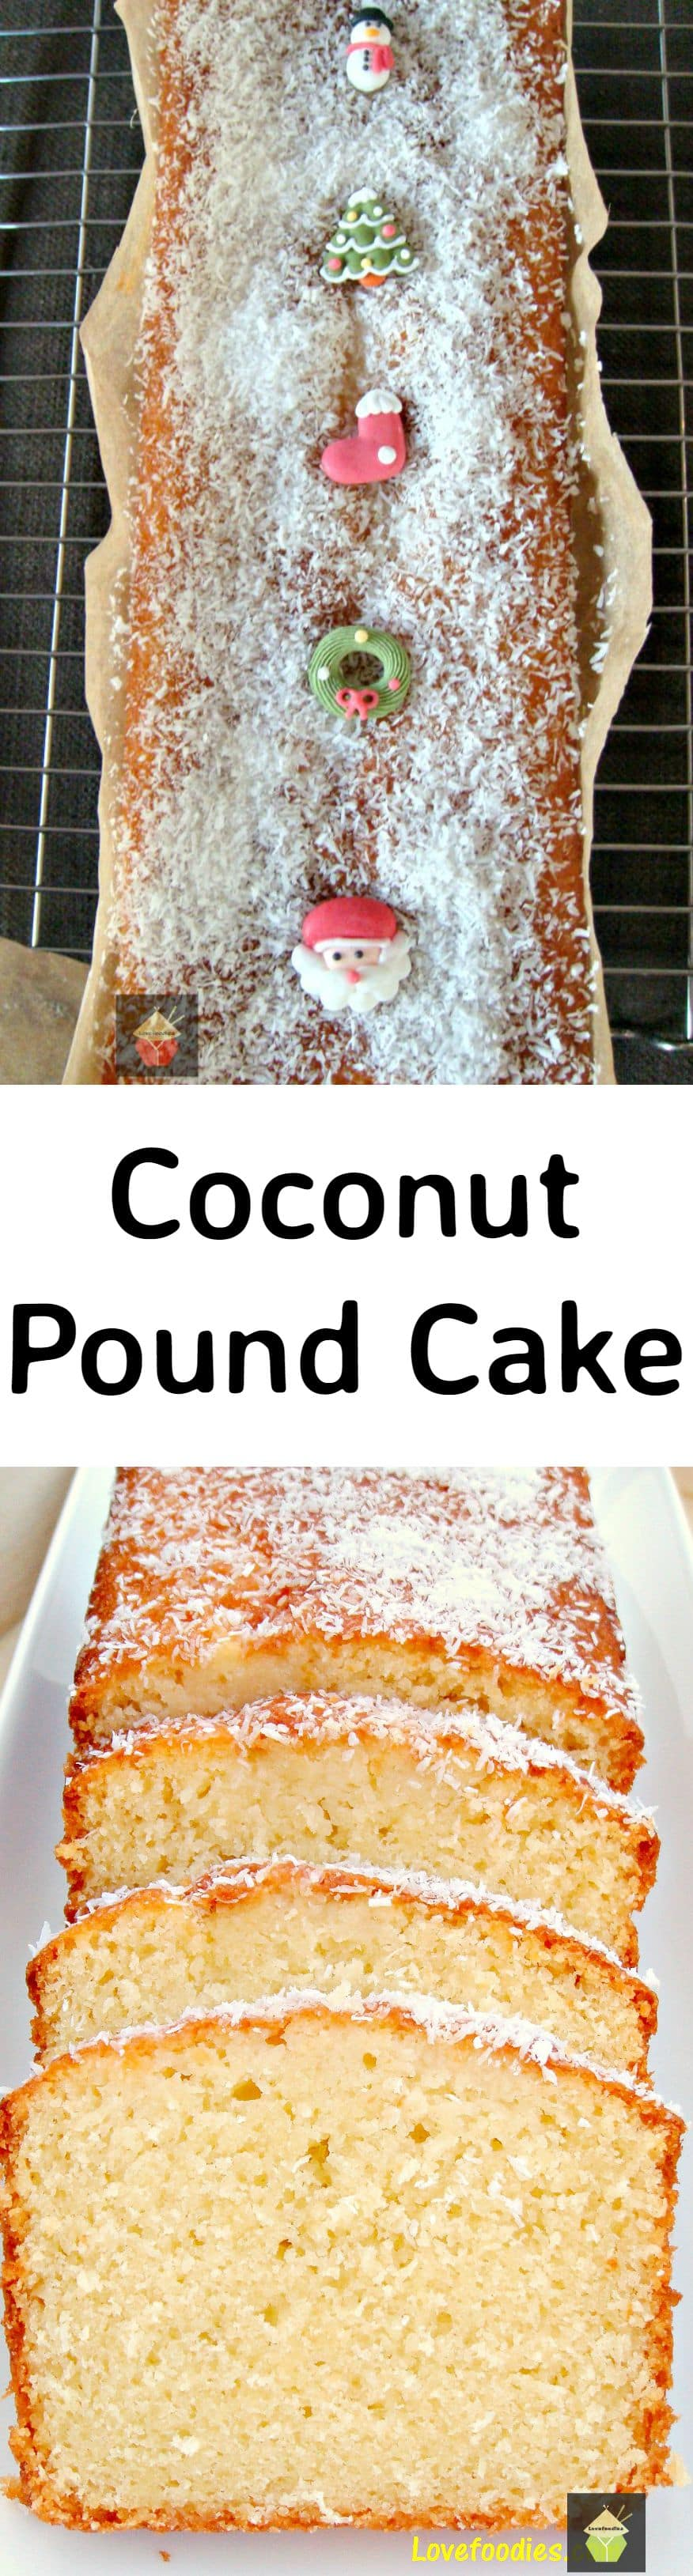 Pineapple coconut pound cake recipes